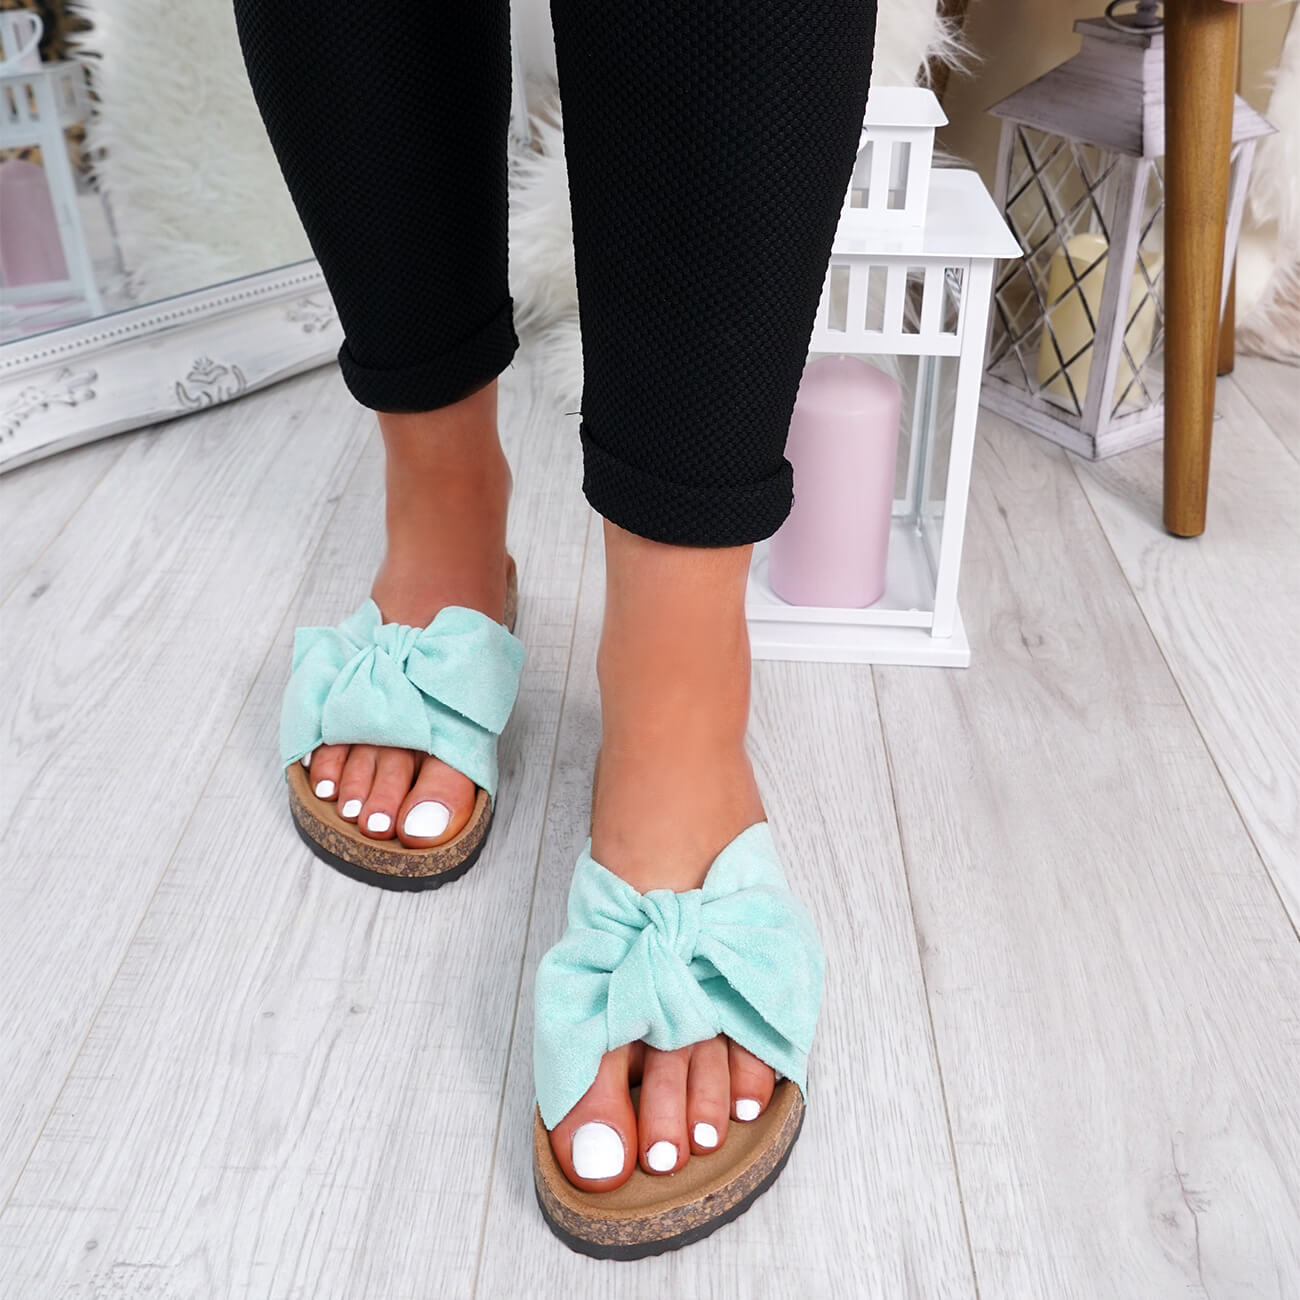 WOMENS-LADIES-SLIP-ON-FLAT-SANDALS-BOW-SLIDERS-SUMMER-CASUAL-SHOES-SIZE thumbnail 22